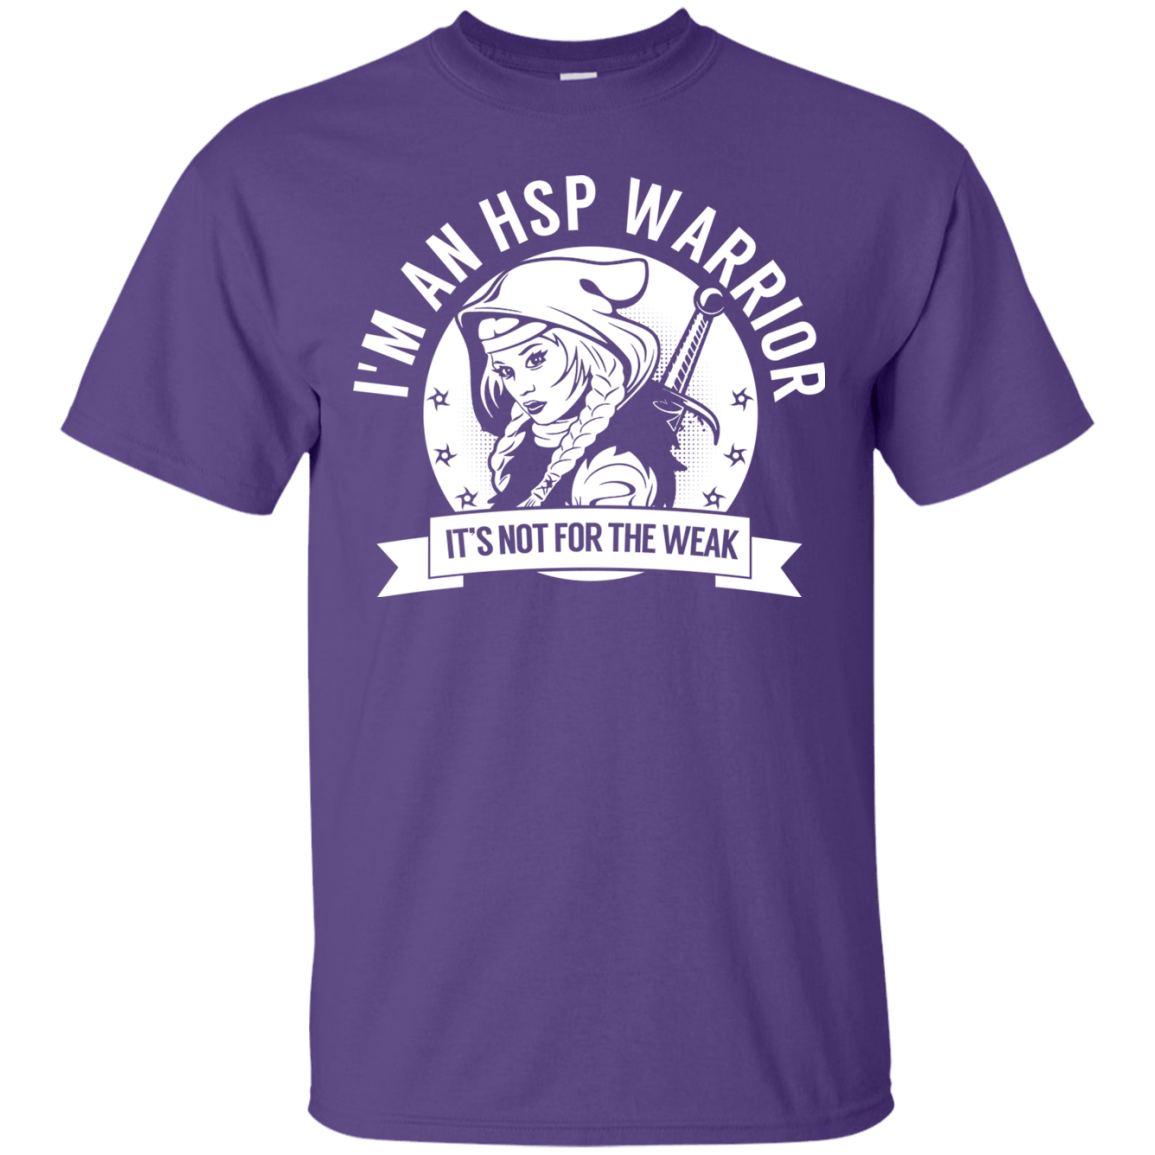 T-Shirts - Hereditary Spastic Paraparesis - HSP Warrior Hooded Cotton T-Shirt